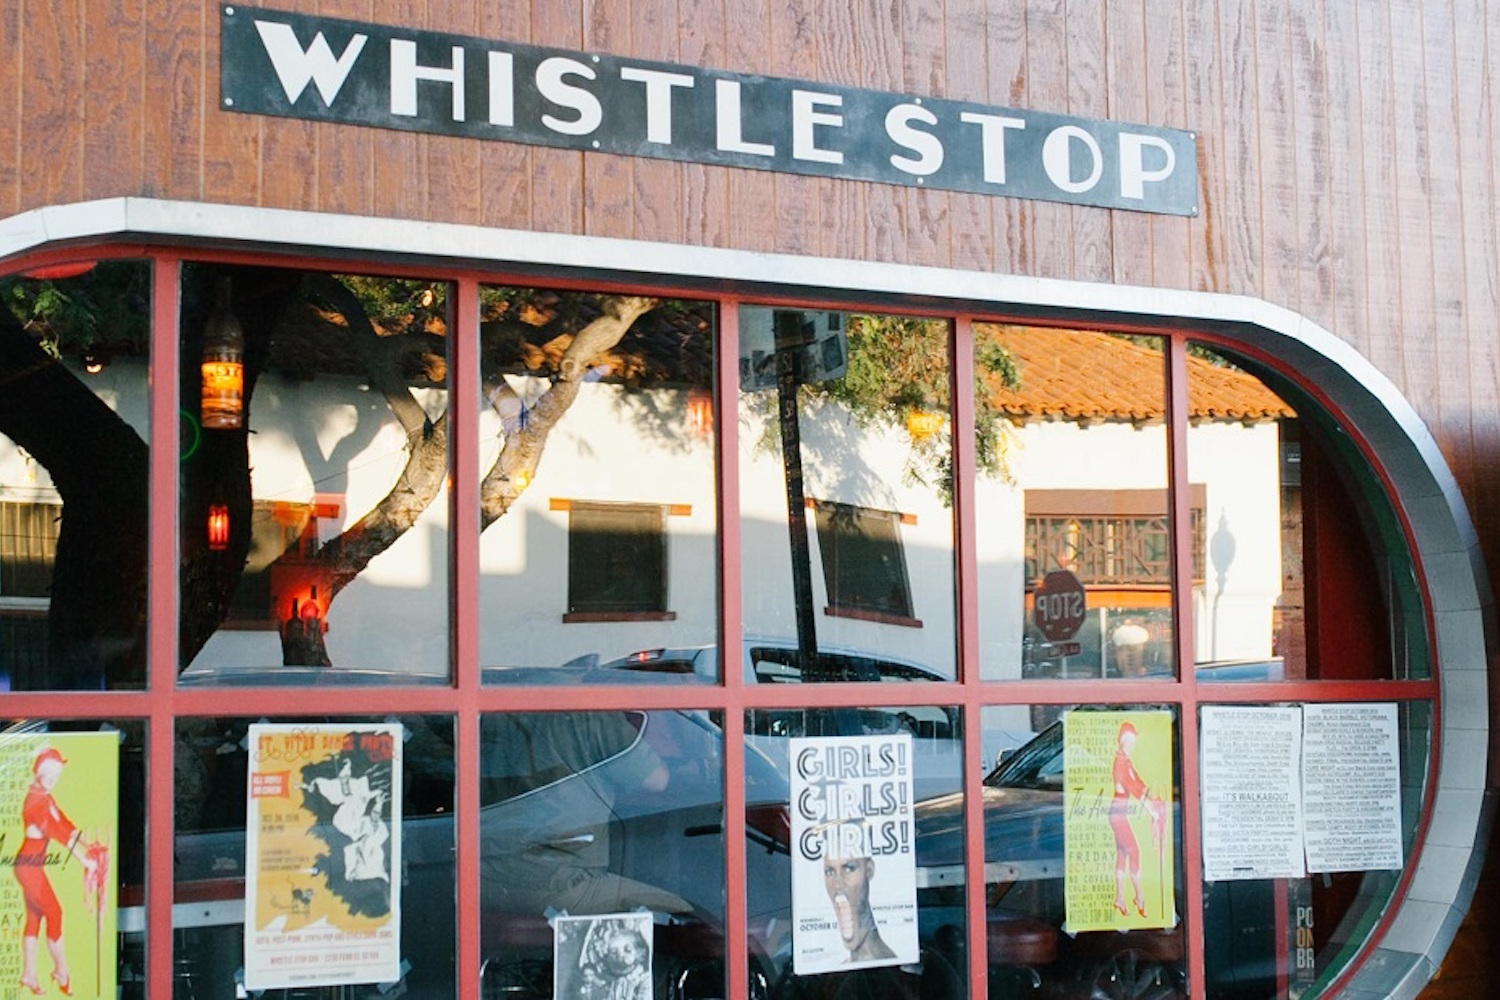 Whistle%20stop